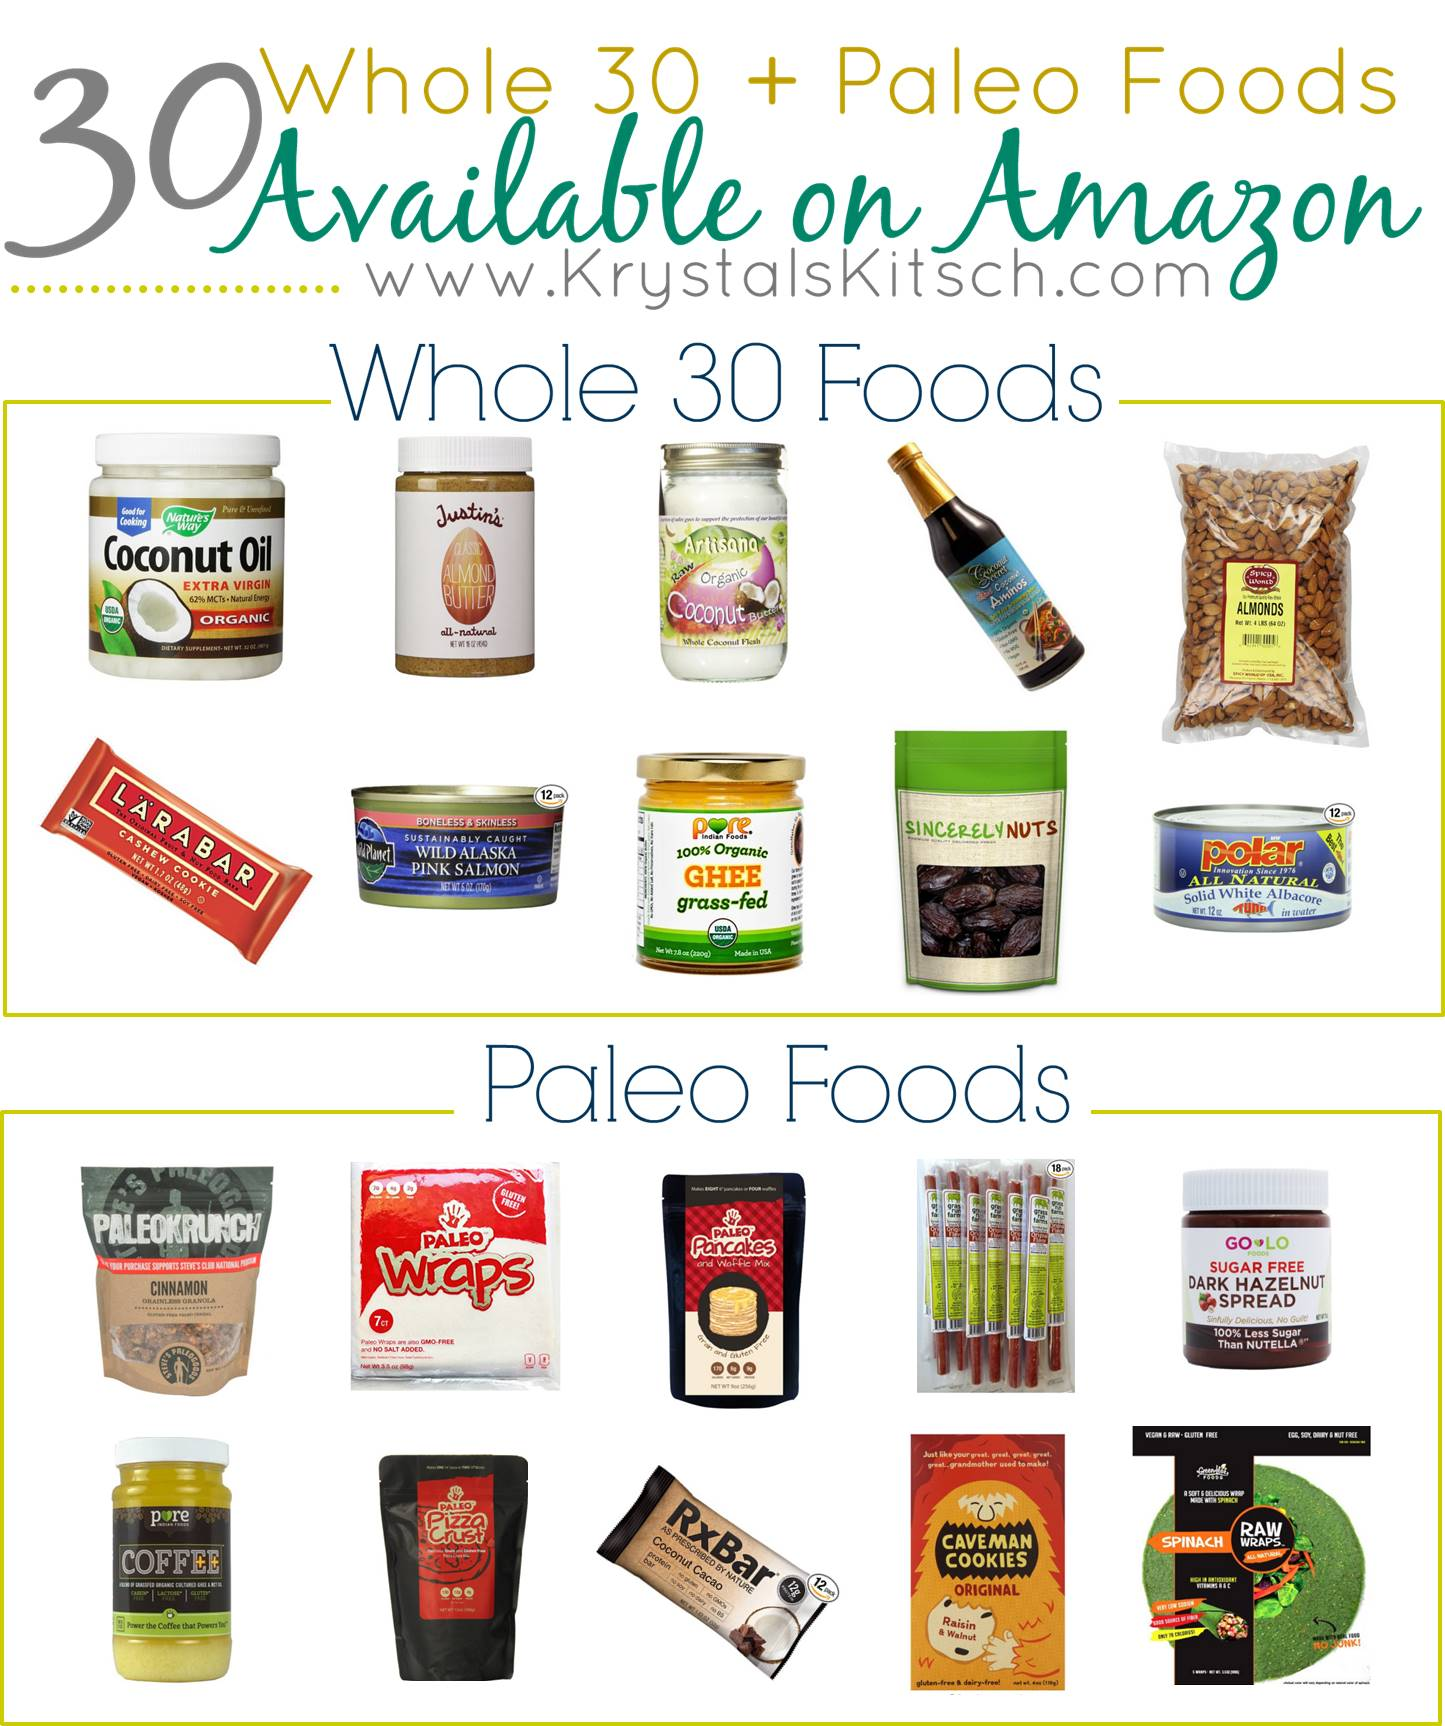 Whole 30 Meal Plan Ideas